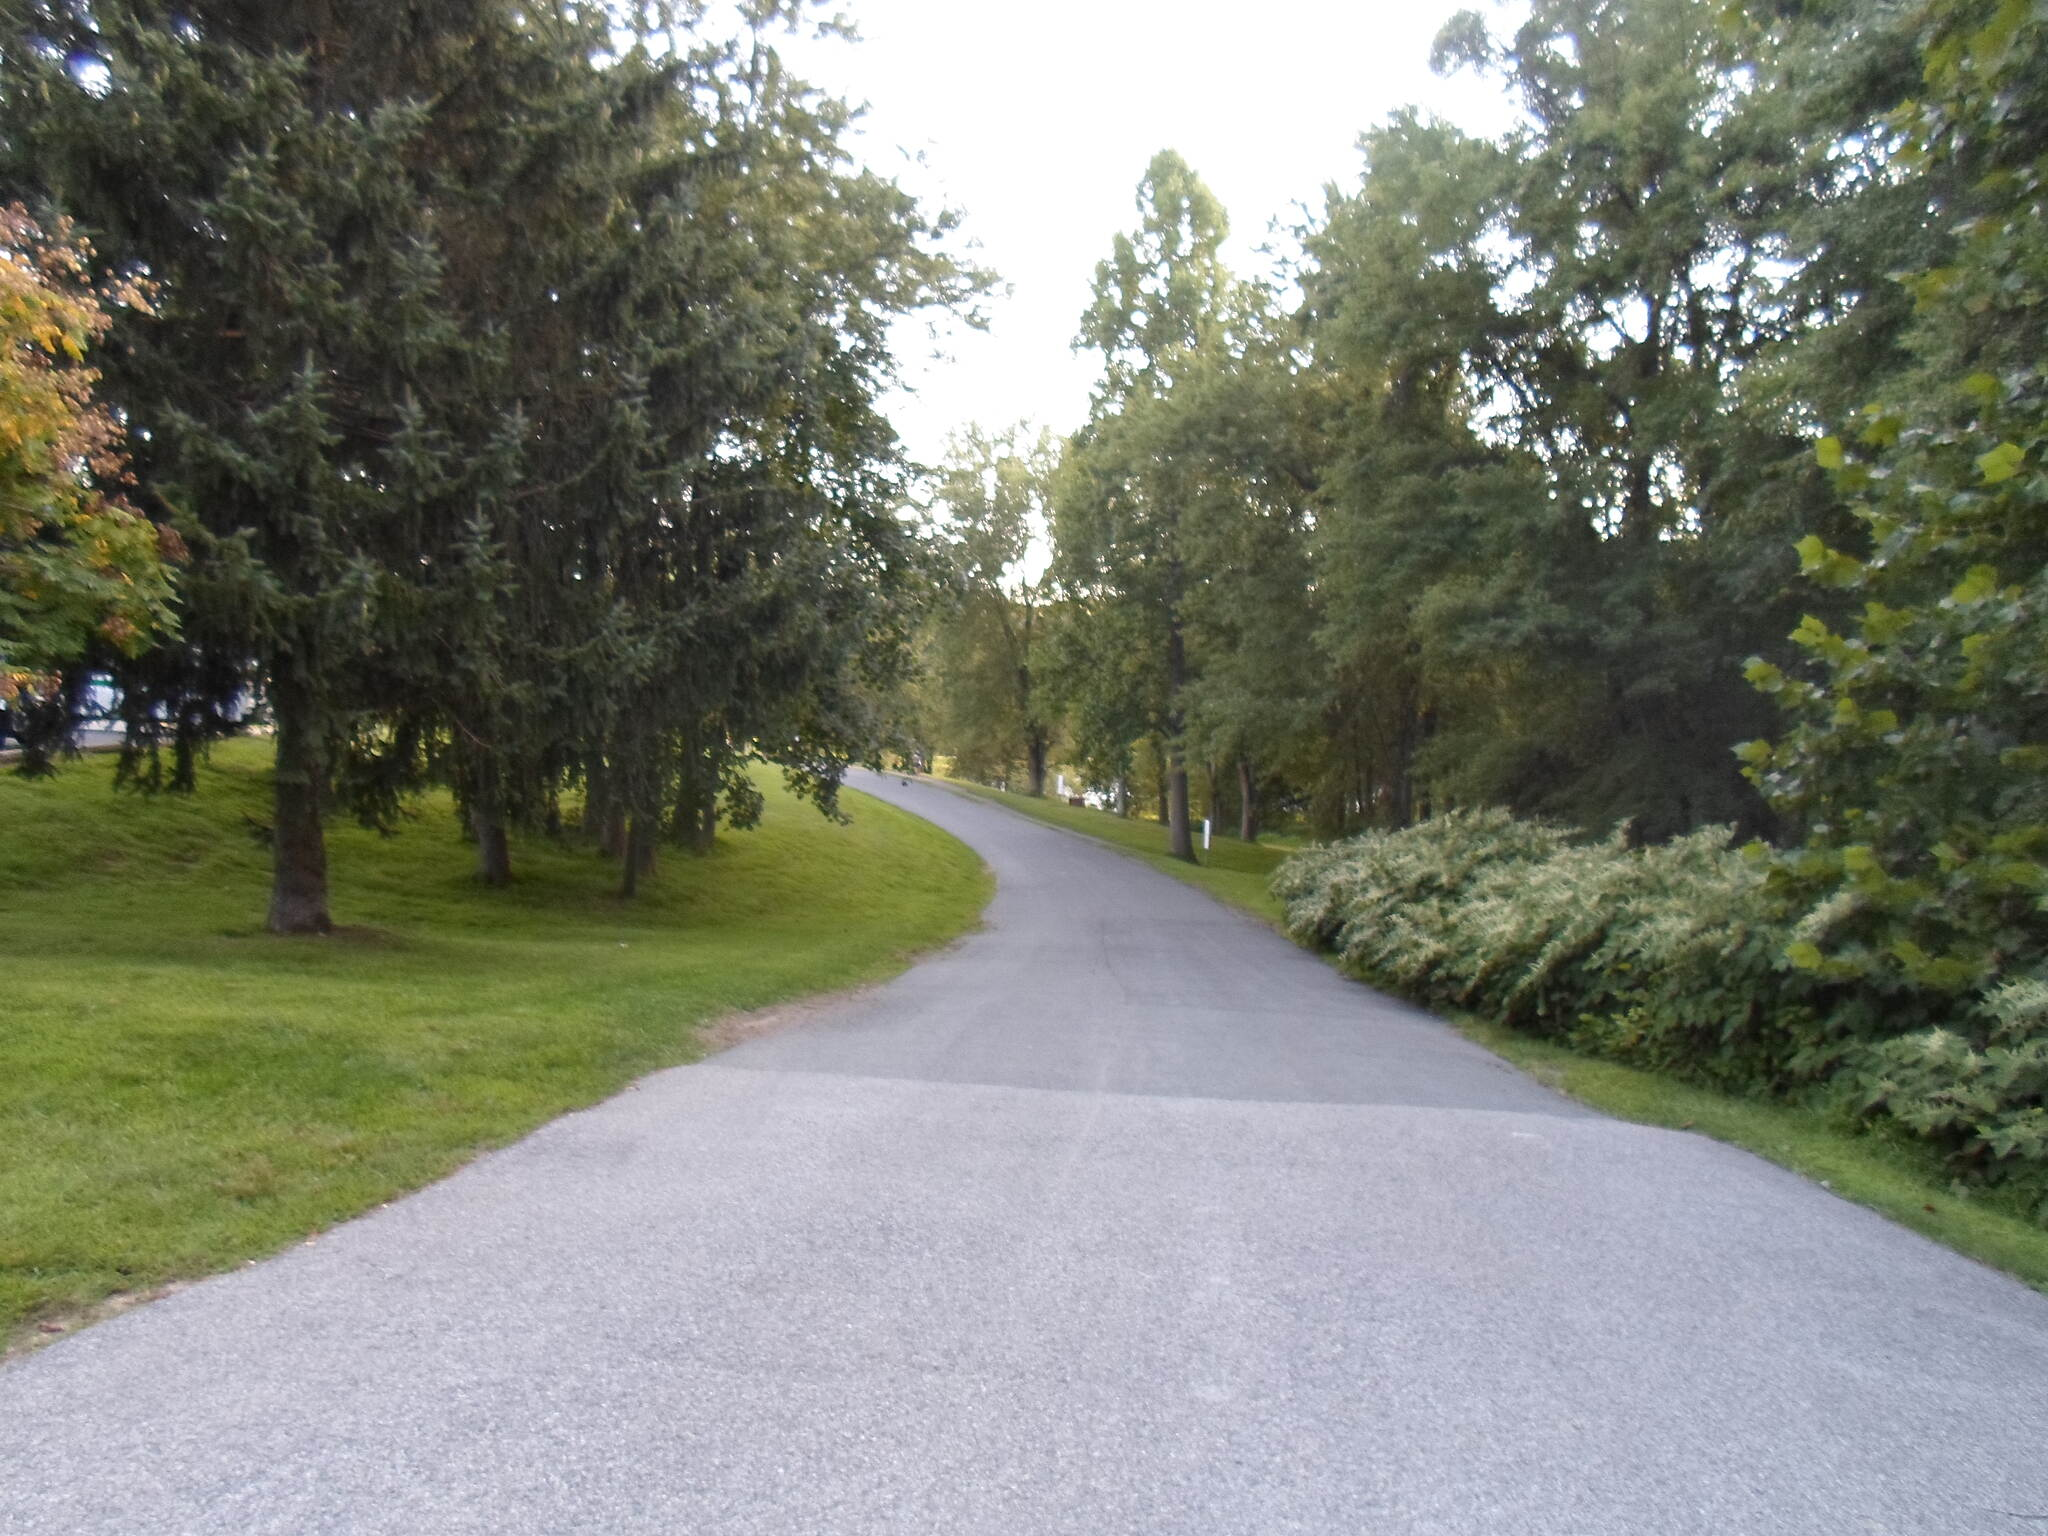 MA & PA Heritage Trail Ma & Pa Heritage Trail The trail briefly follows the driveway into the Harford Equine Center & Fairgrounds south of N. Tollgate Road.